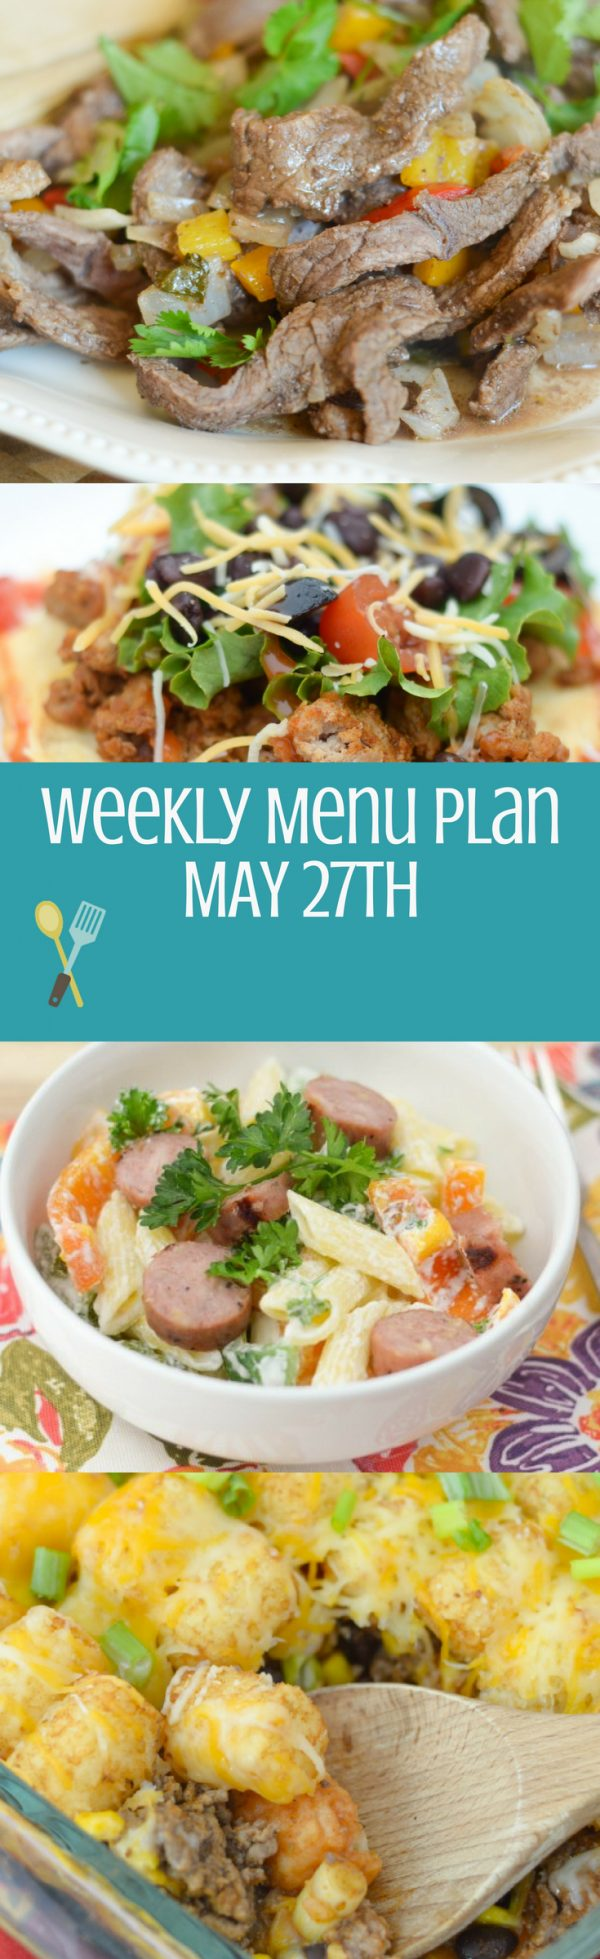 Weekly Menu Plan - Week of May 27th